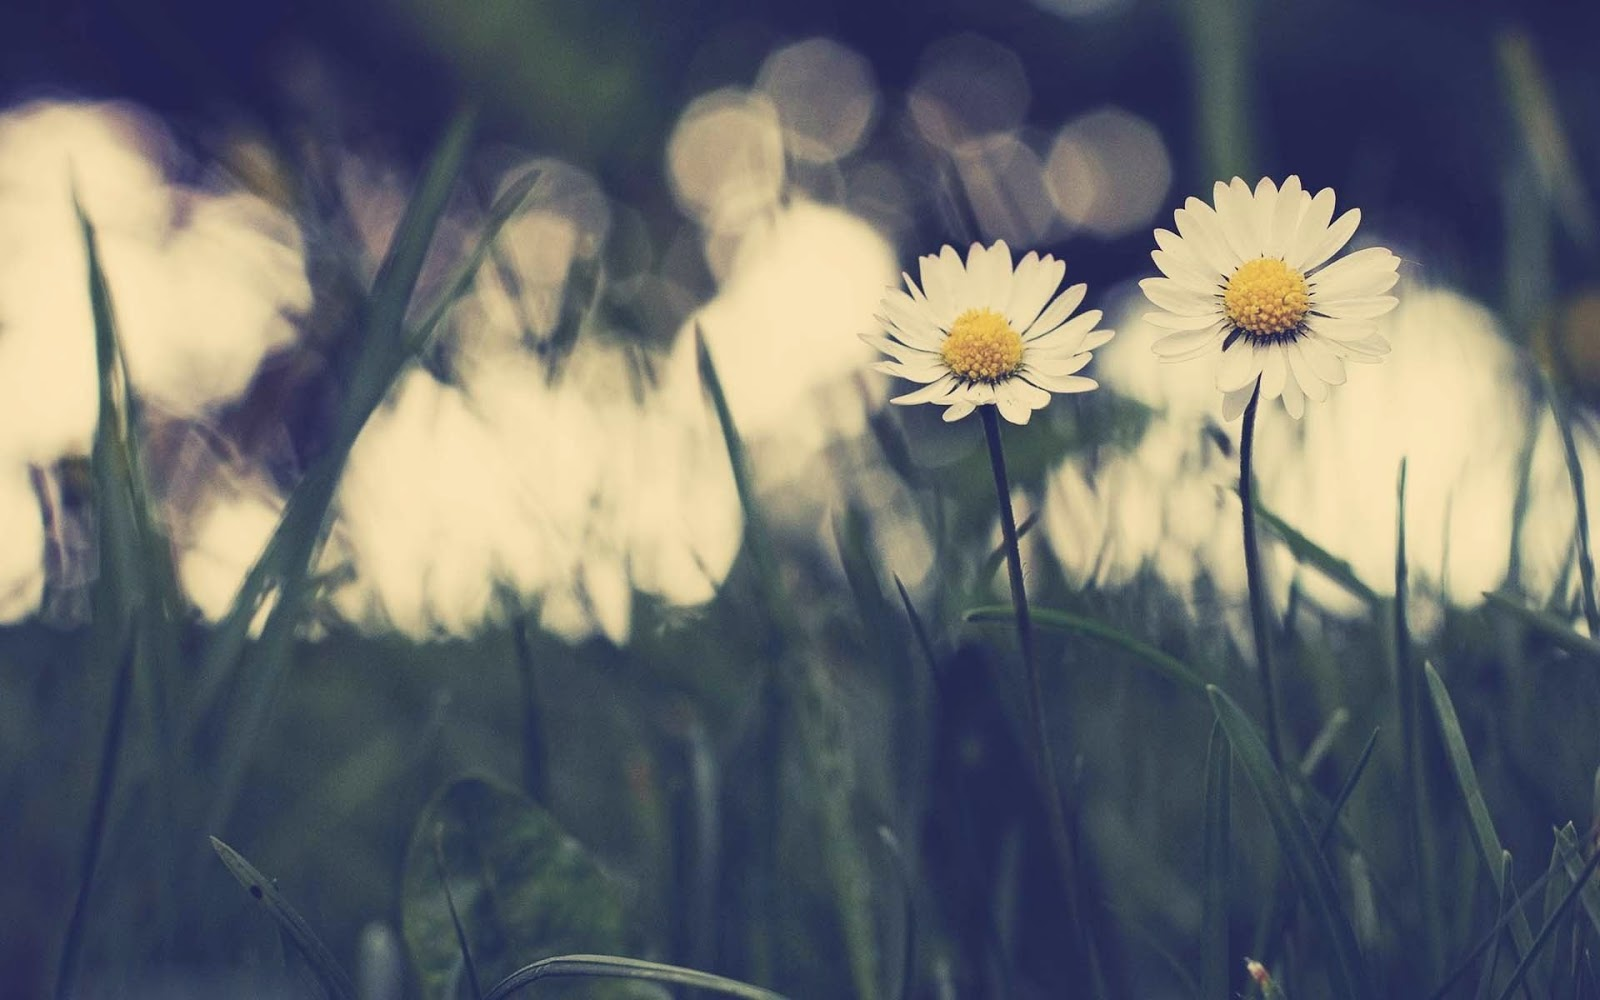 Daisy-flower-photography-stock-images